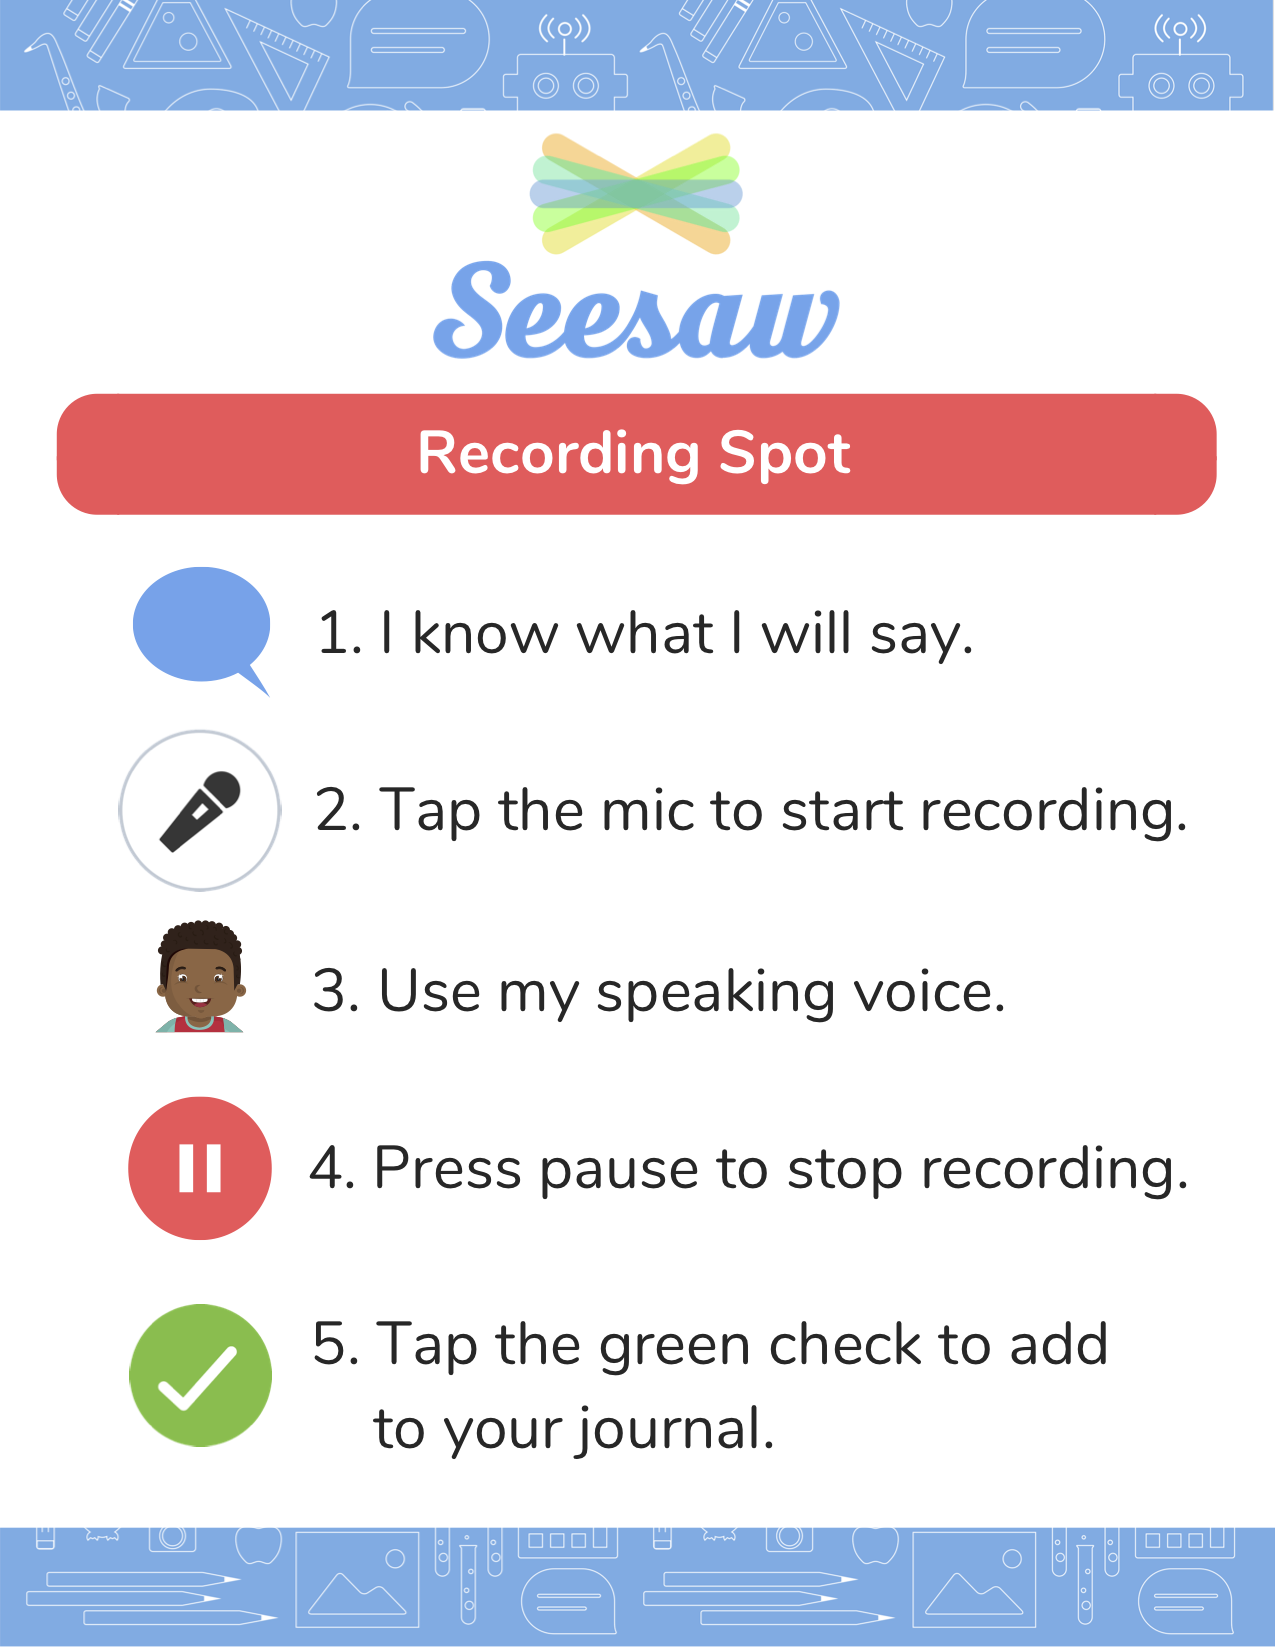 Seesaw_Recording_Spot_Poster.png